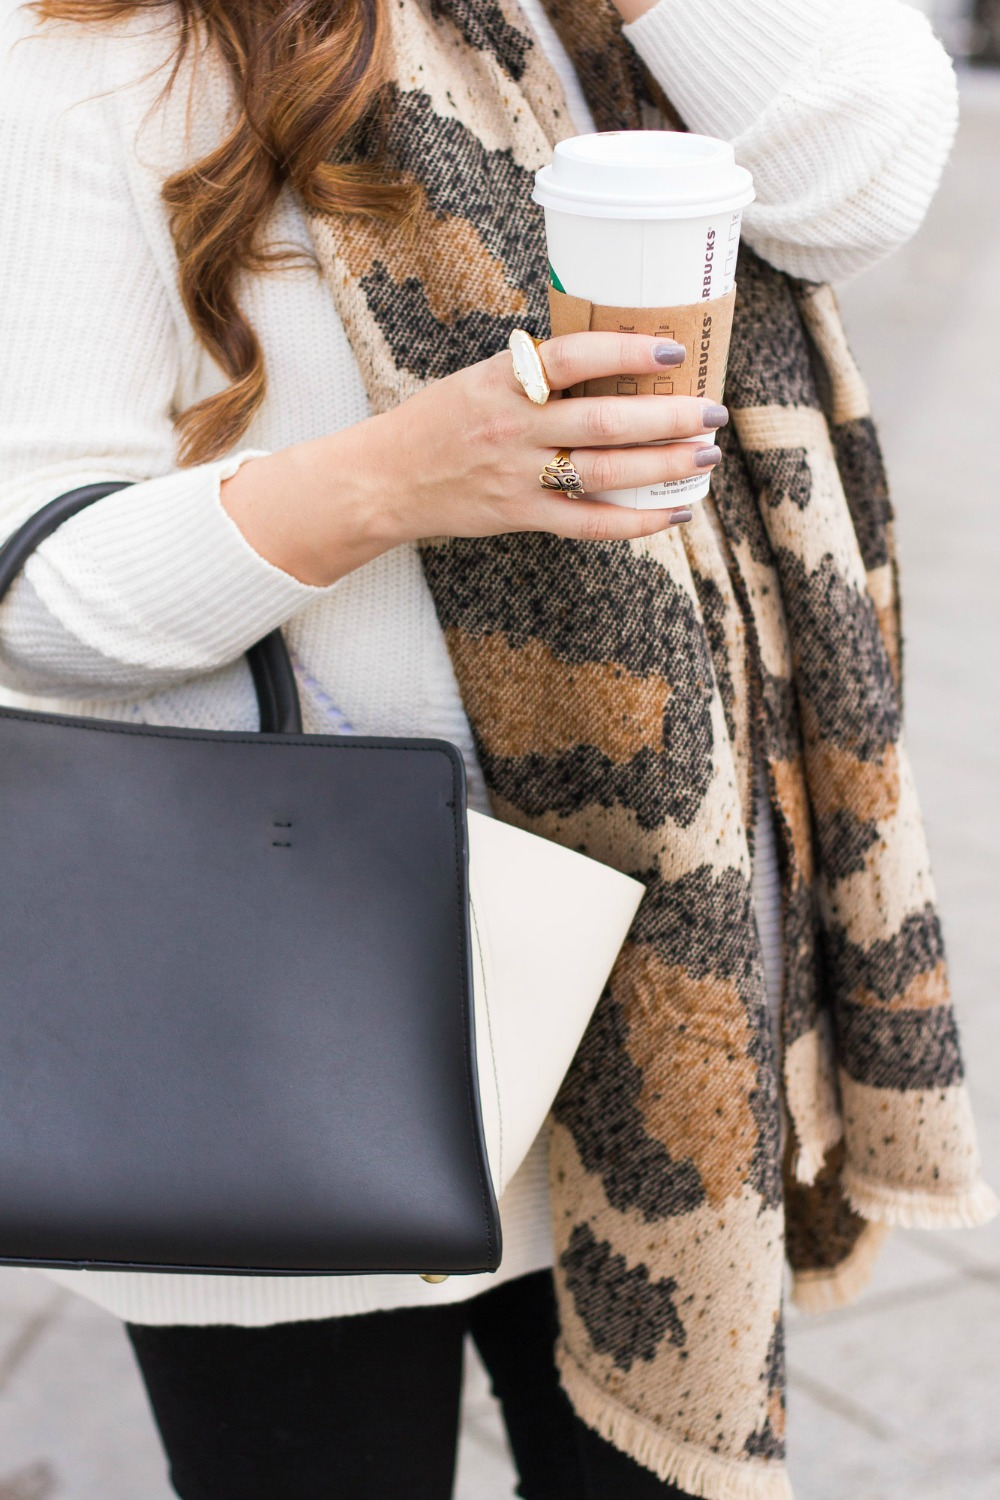 Zac Zac Posen Bag, Leopard Scarf, Fall Fashion, Fall Outfit Inspo